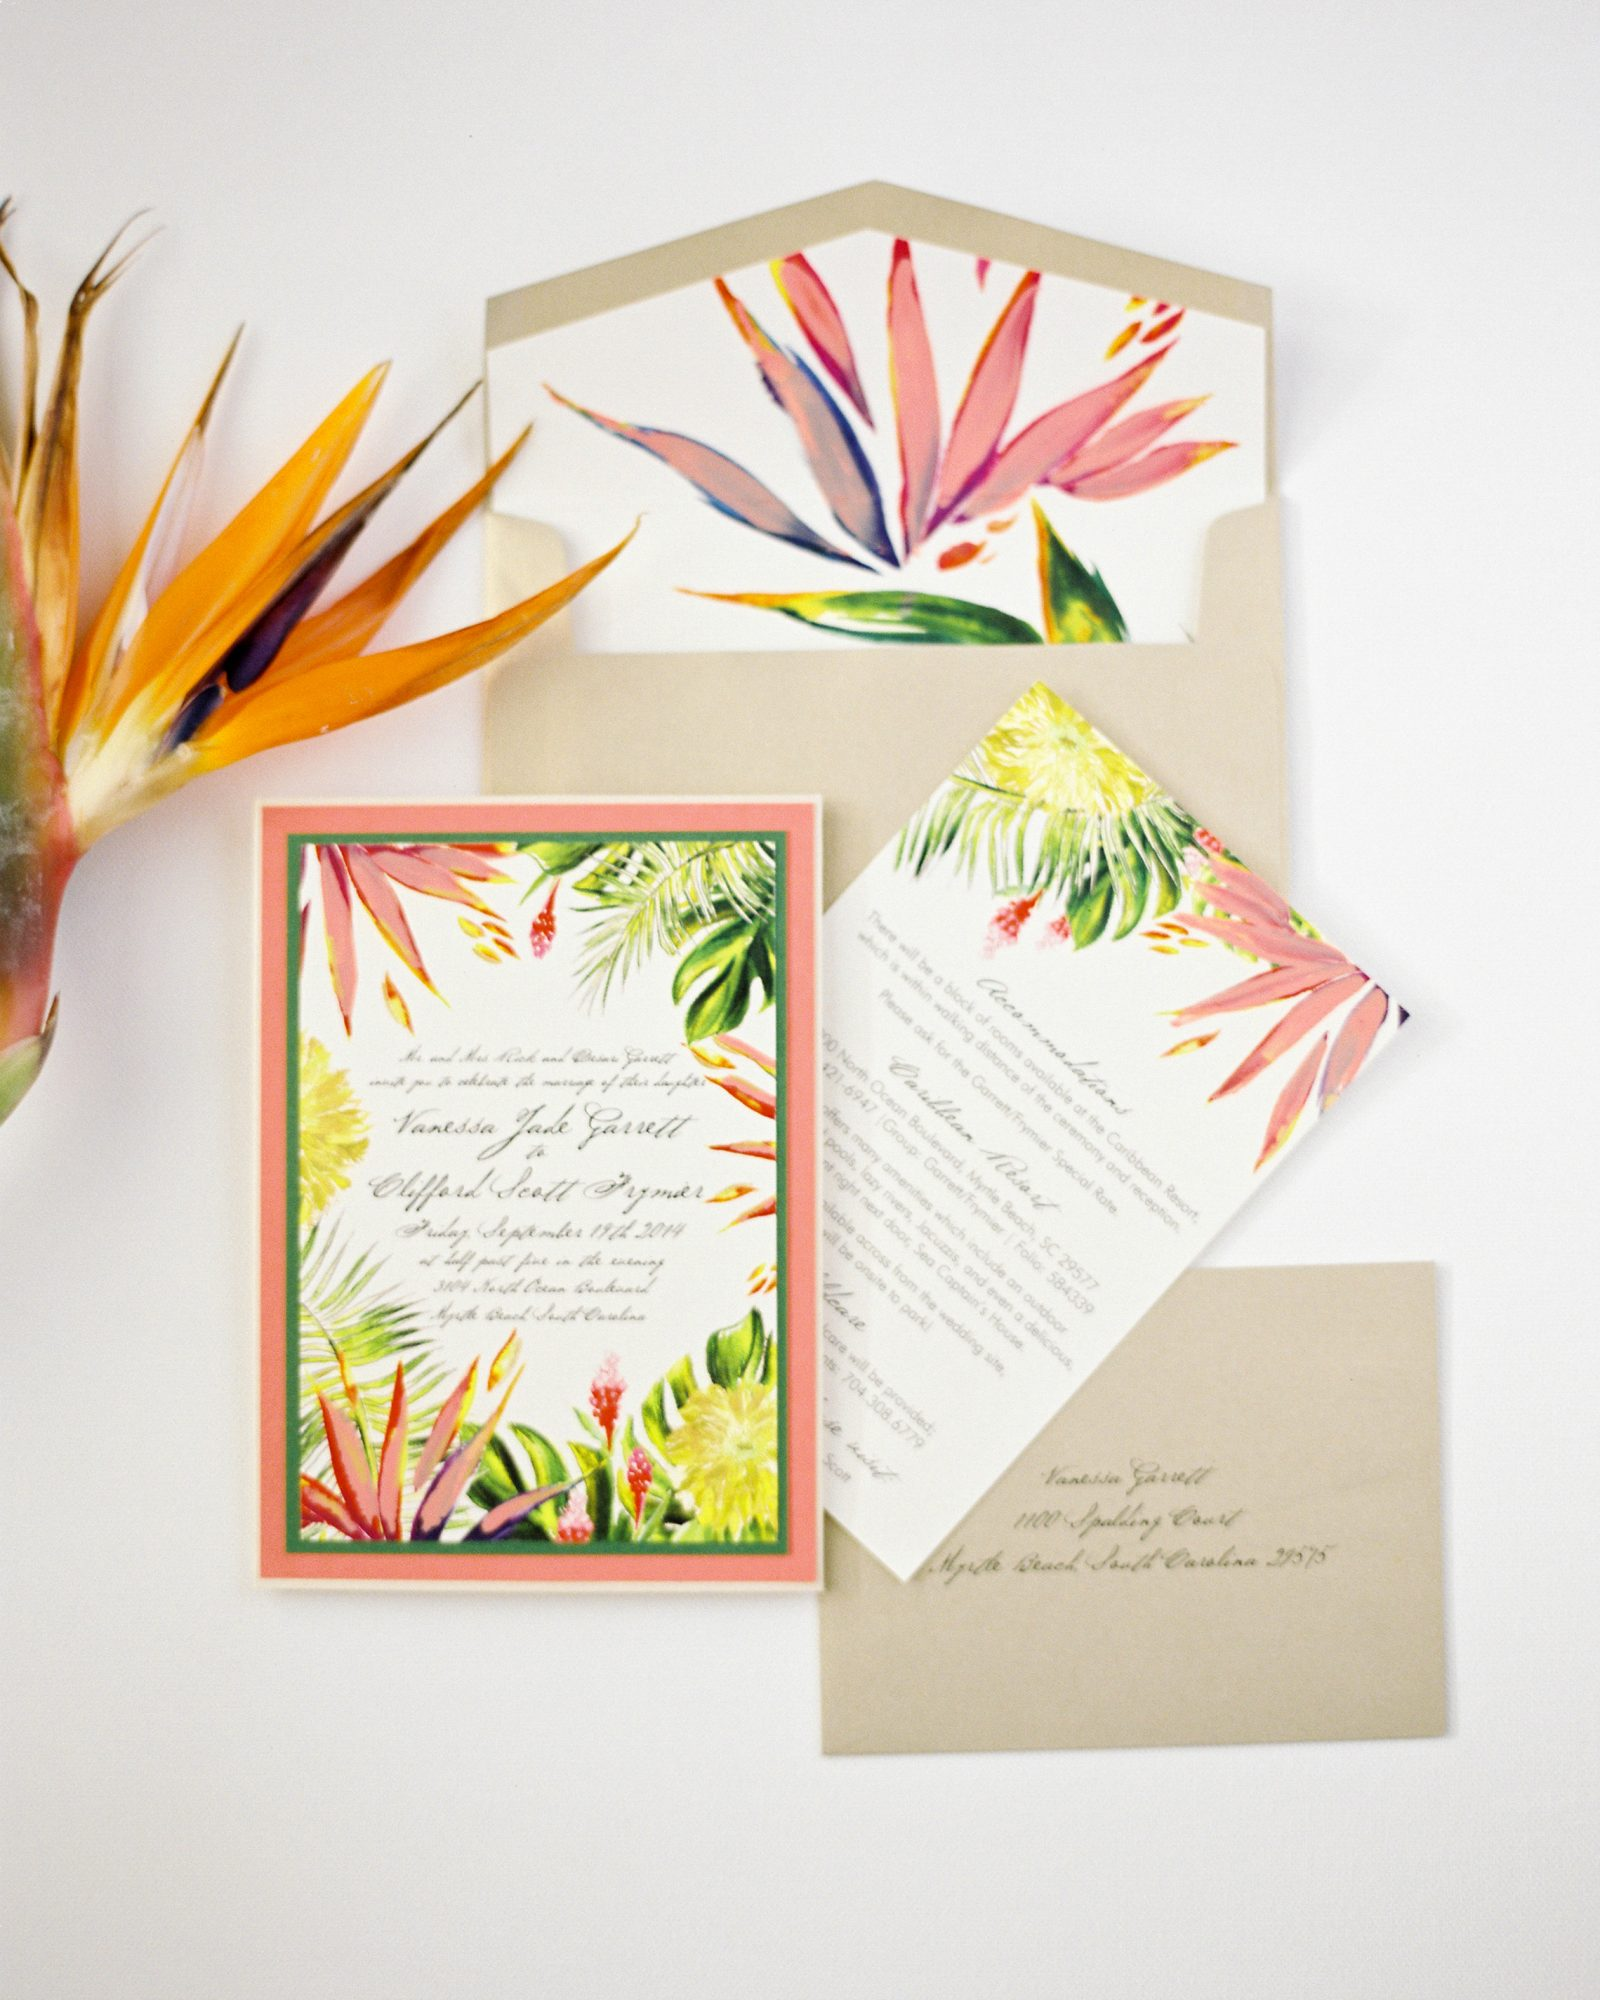 Beach wedding invitations don't have to include blue, especially if your destination boasts more scenery than just the ocean itself. Momental Designs used yellow, pink, and green for this tropical suite.